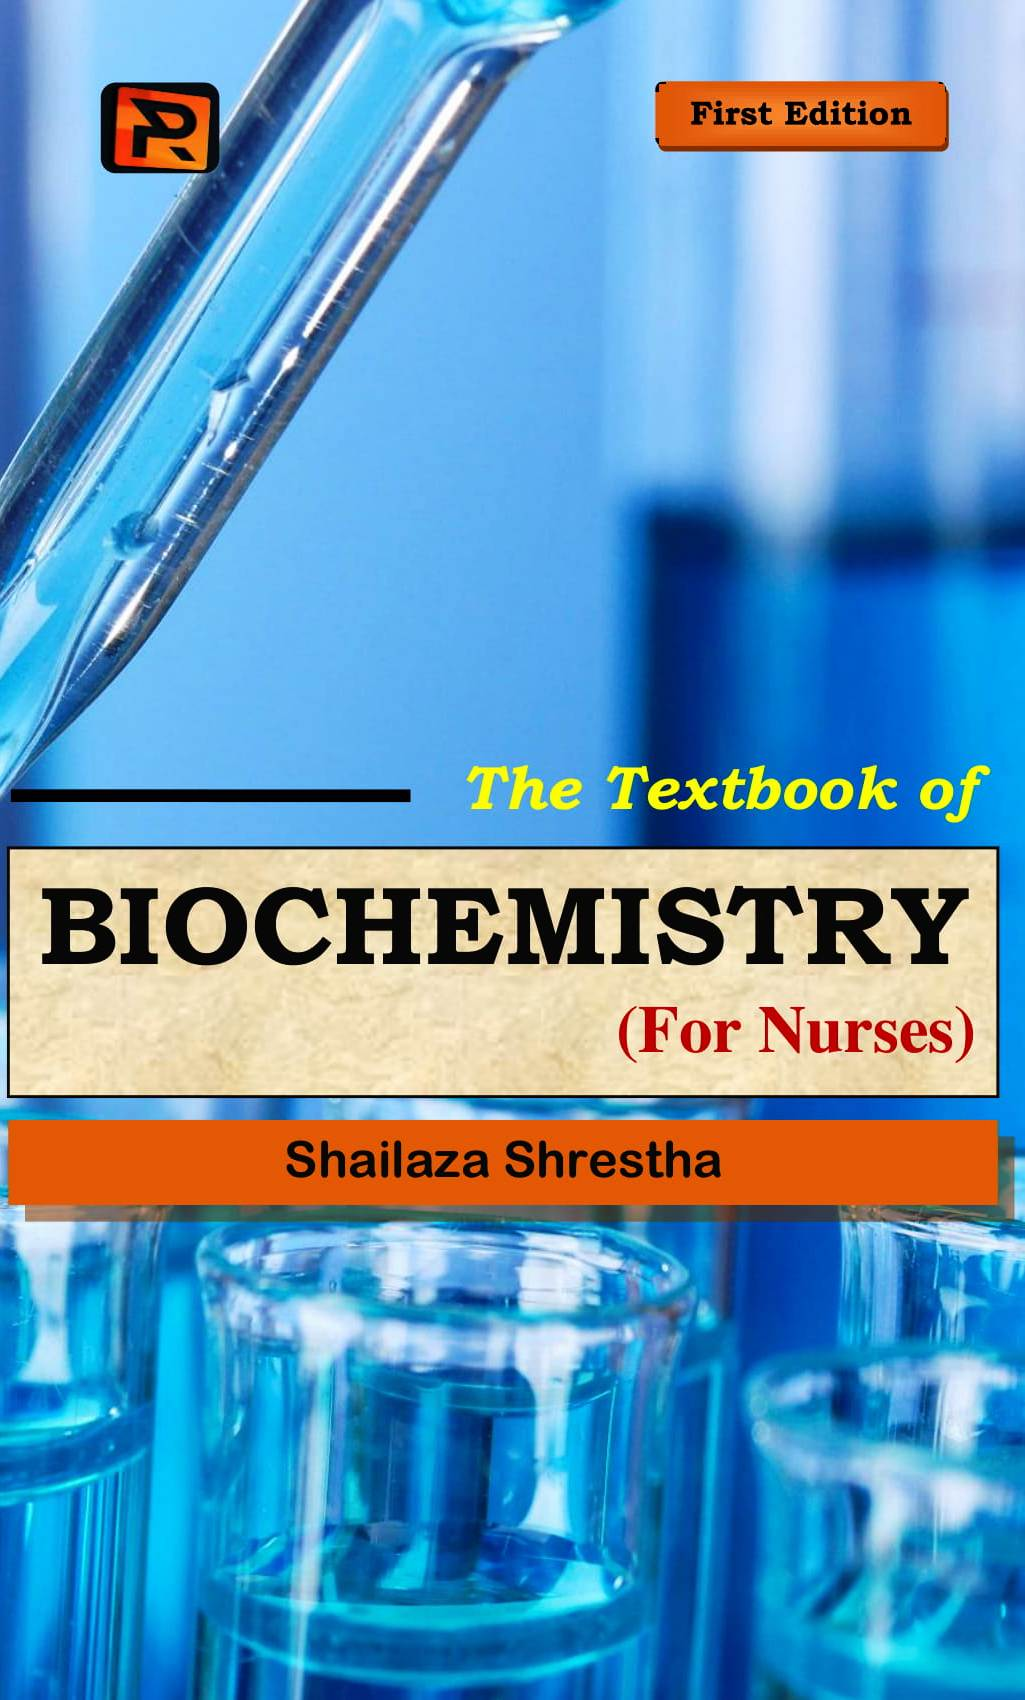 The Textbook of Biochemistry for Nurses